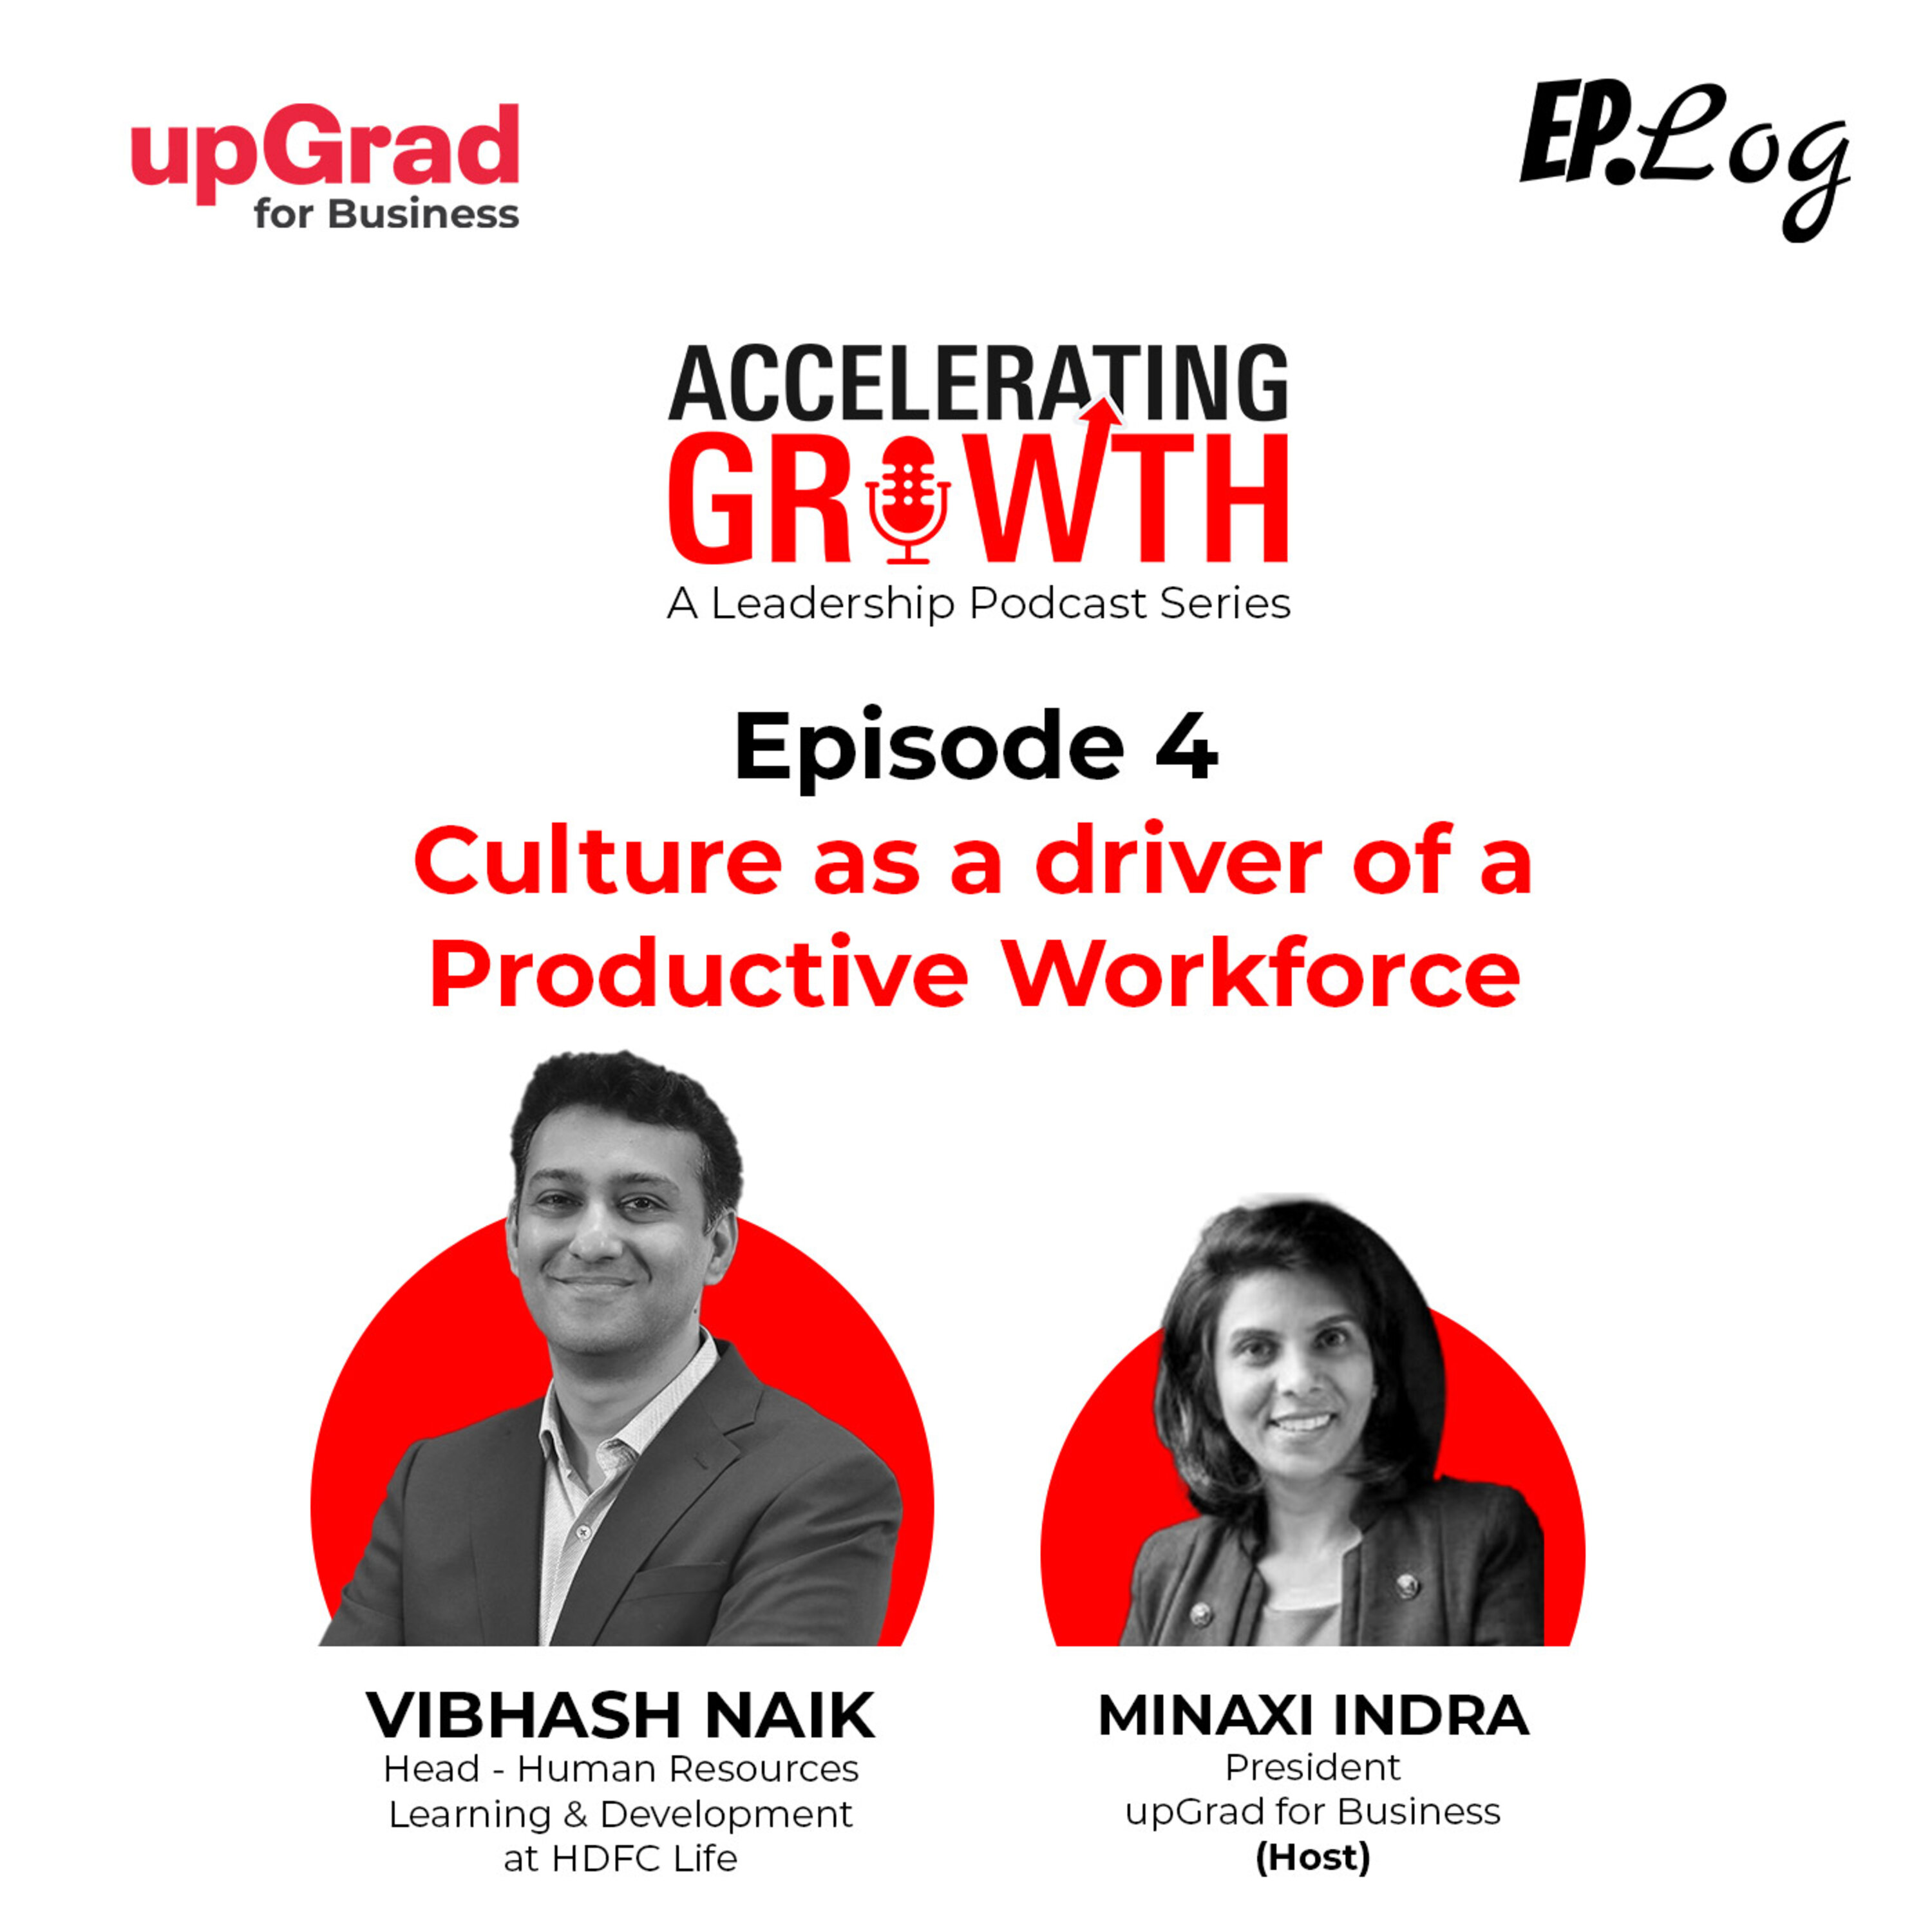 S1E4: Culture as a driver of a Productive Workforce